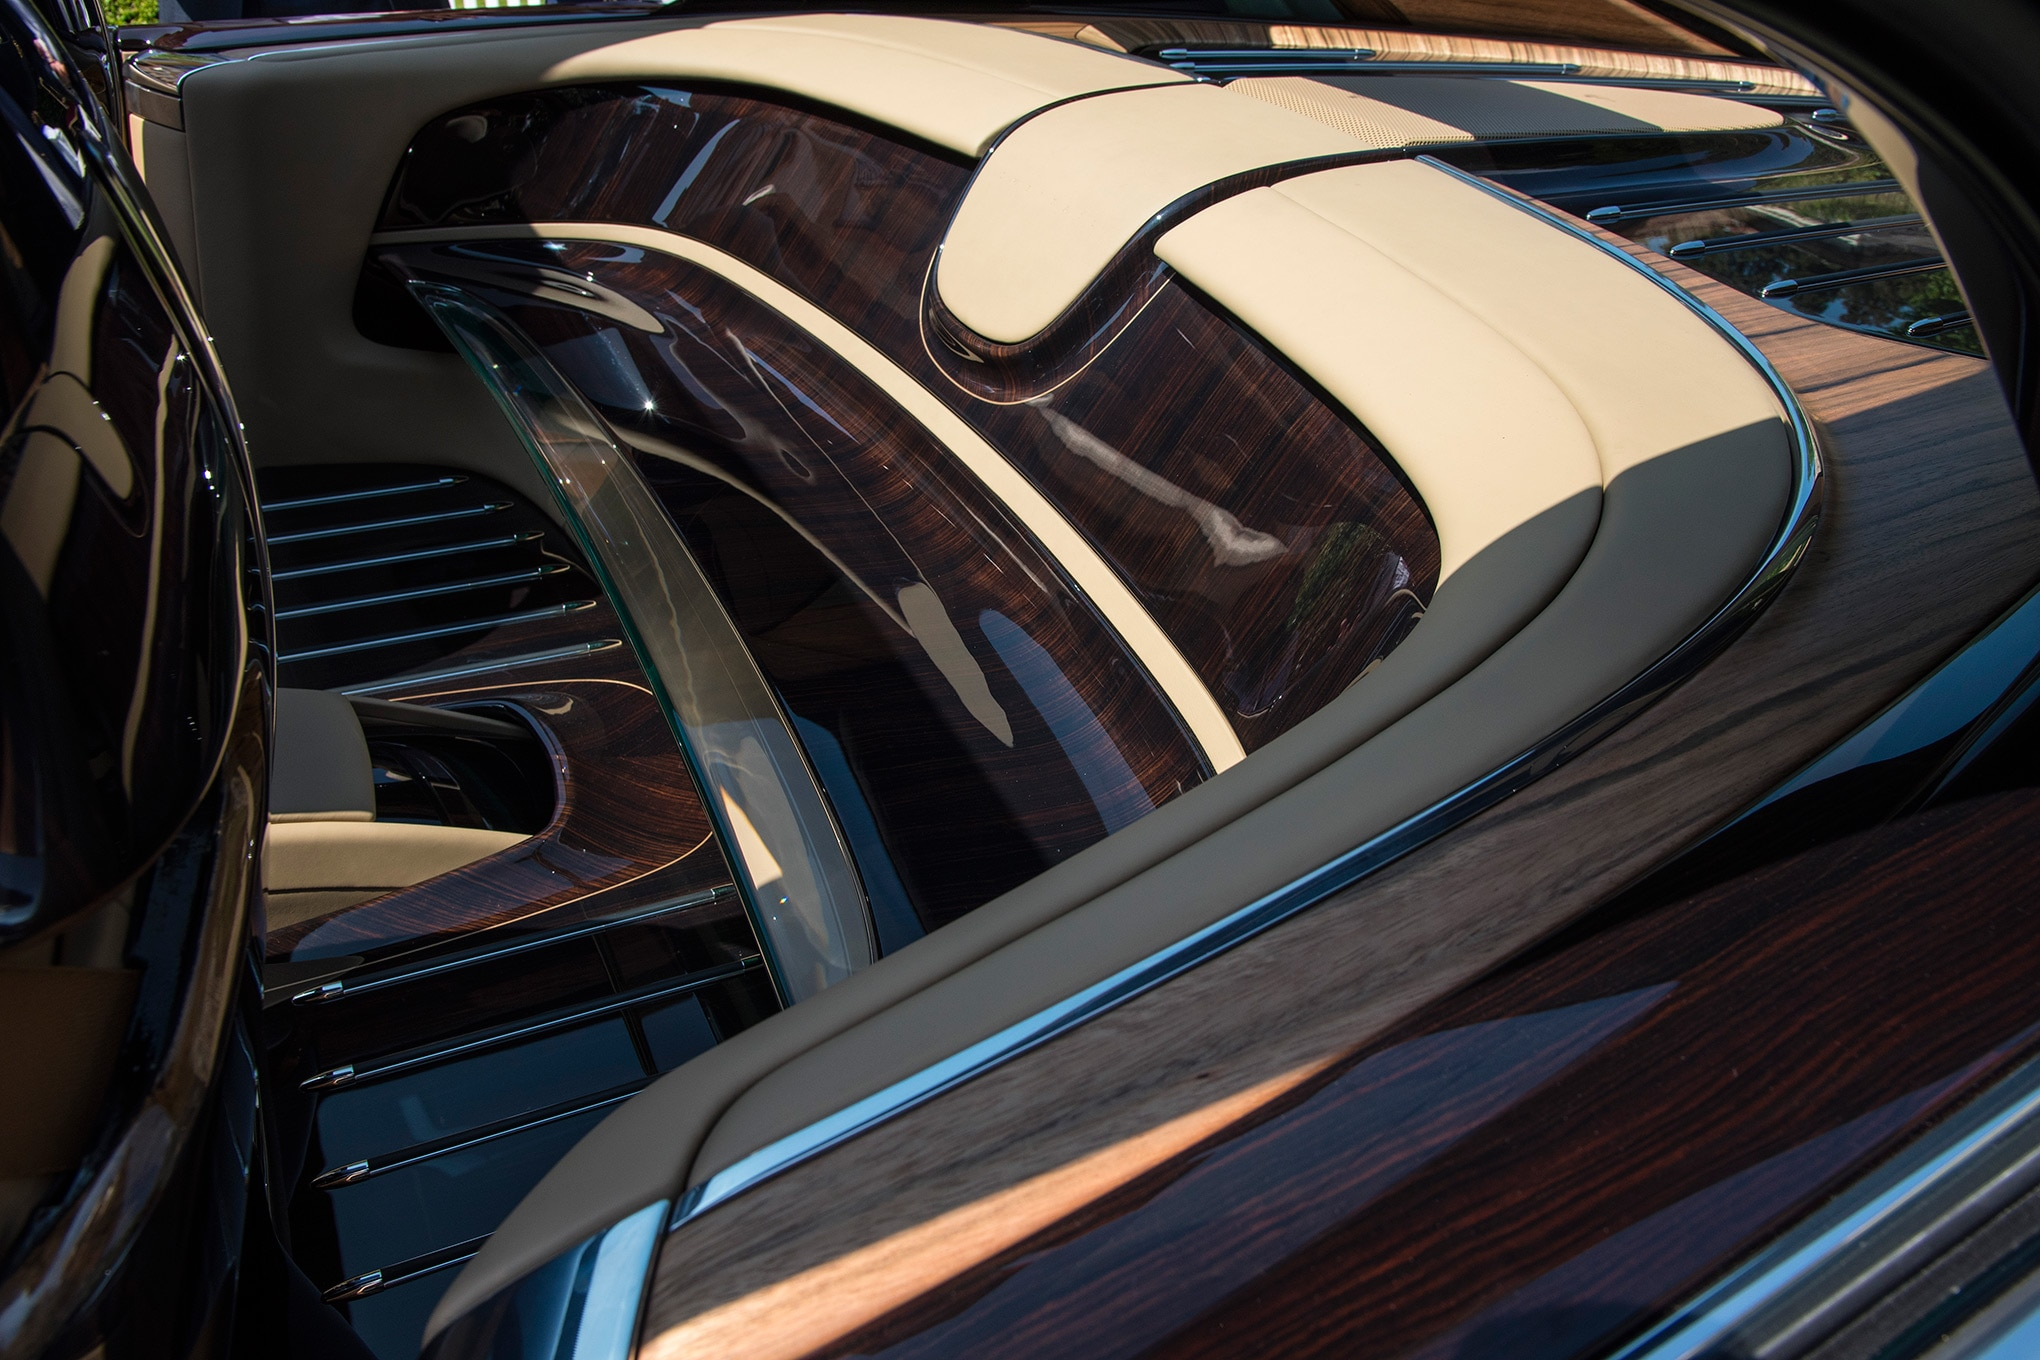 Rolls Royce Sweptail >> Rolls-Royce Sweptail Brings Ultra-Luxe Coach-Building Into the 21st Century   Automobile Magazine